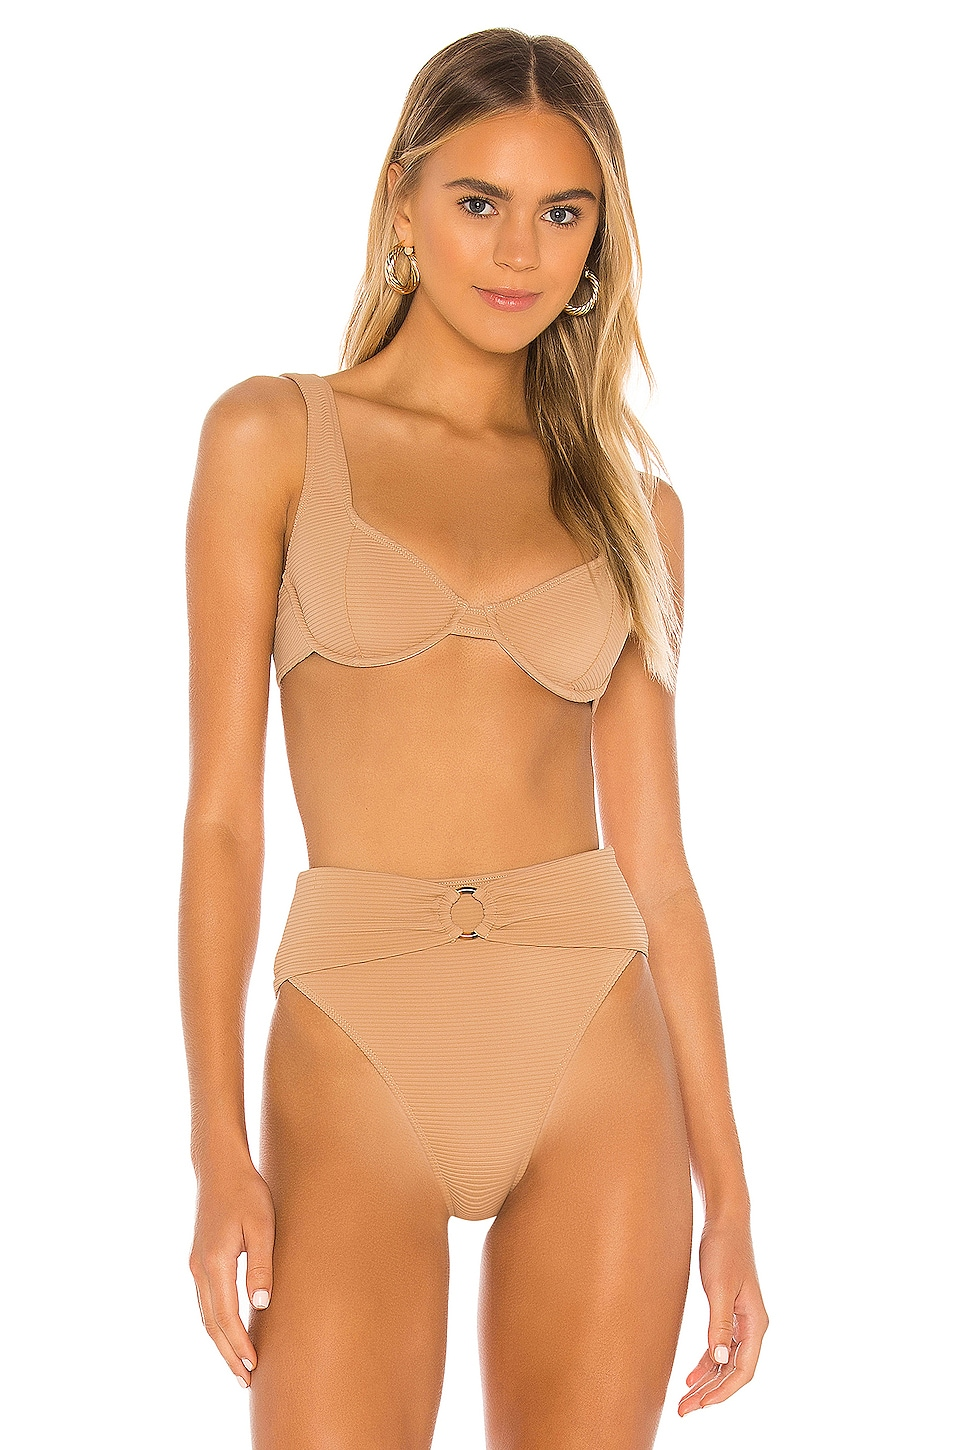 House of Harlow 1960 x REVOLVE Boston Top in Sunkissed